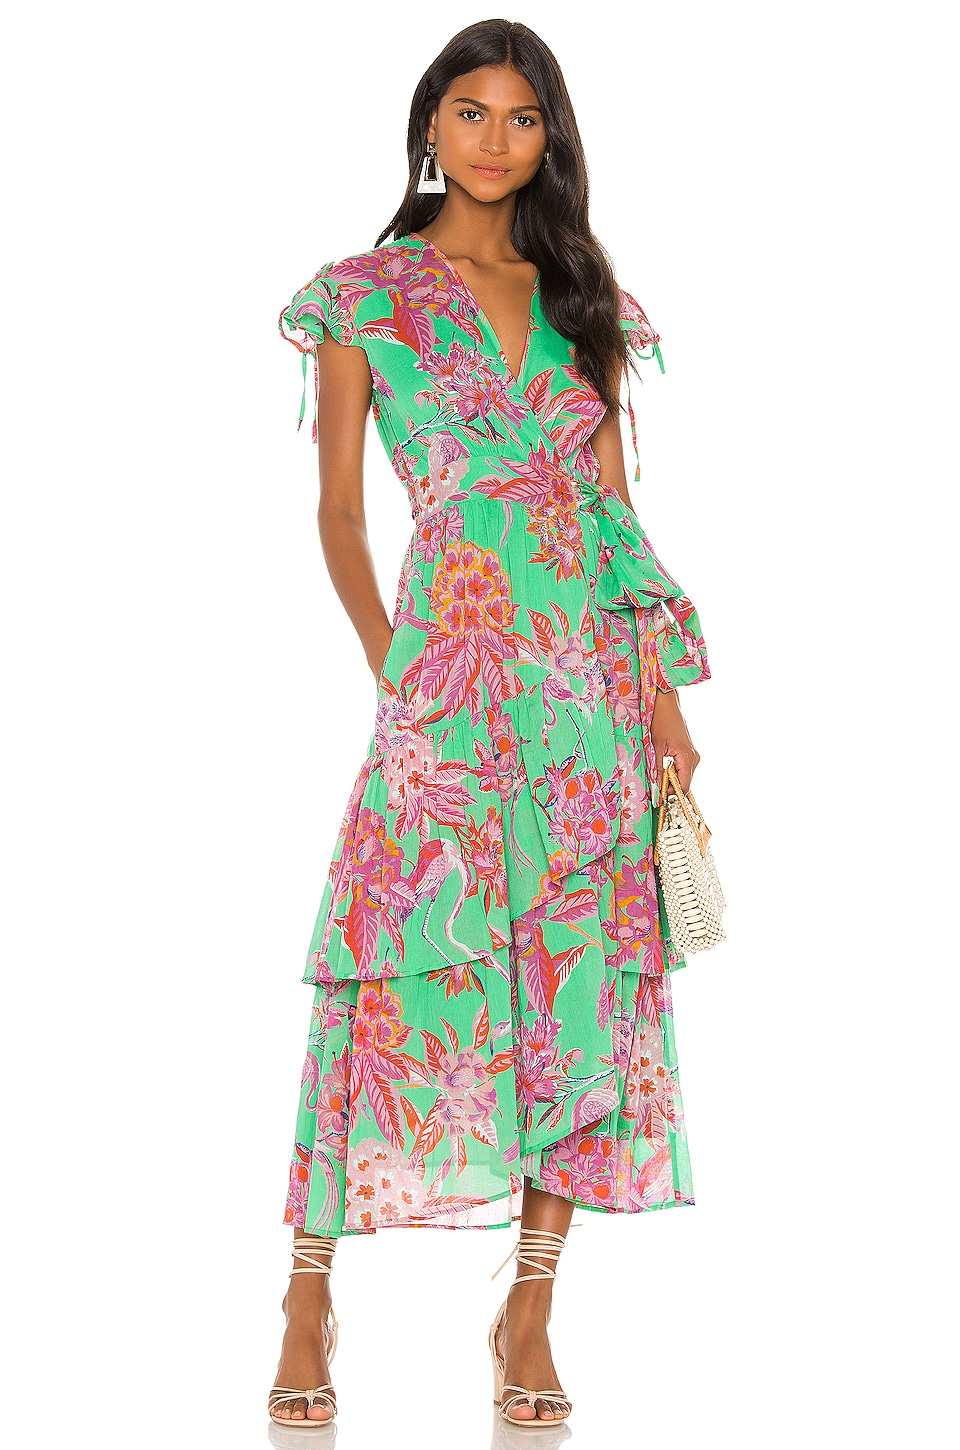 Banjanan Mercy Dress in Flamingo Rhododendron Island Green